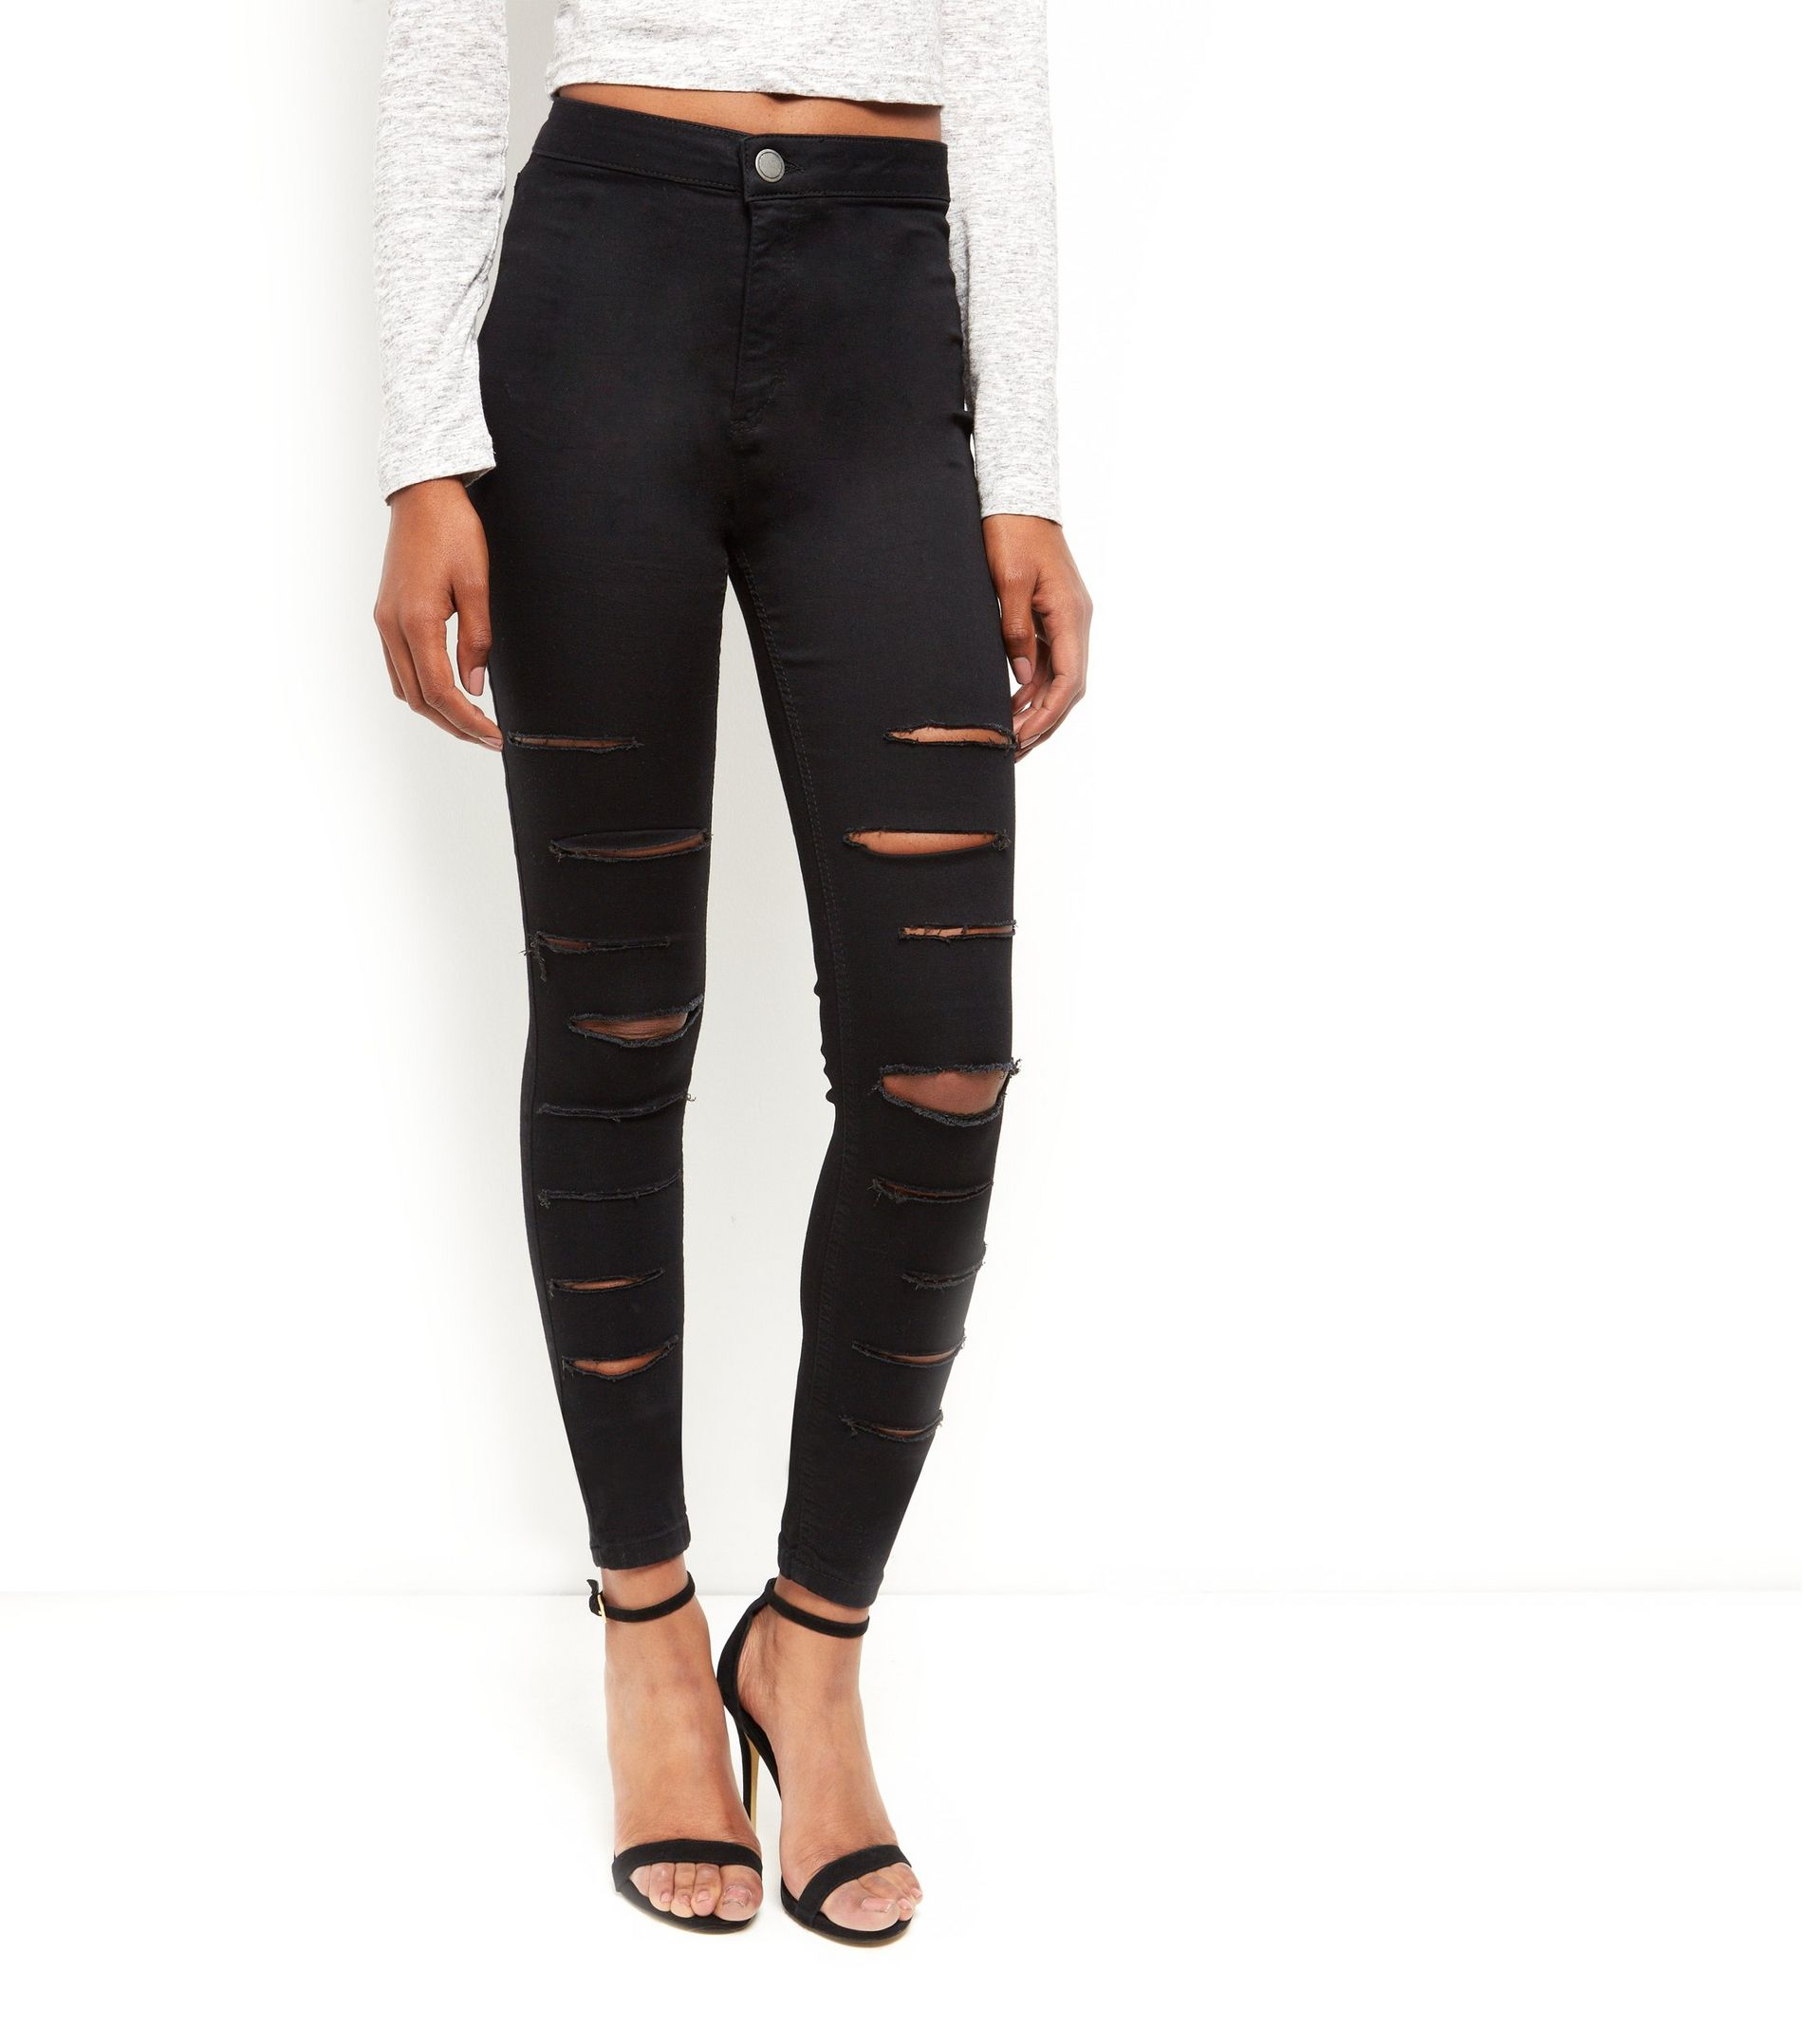 Extreme Ripped High Waisted Super Skinny Jeans